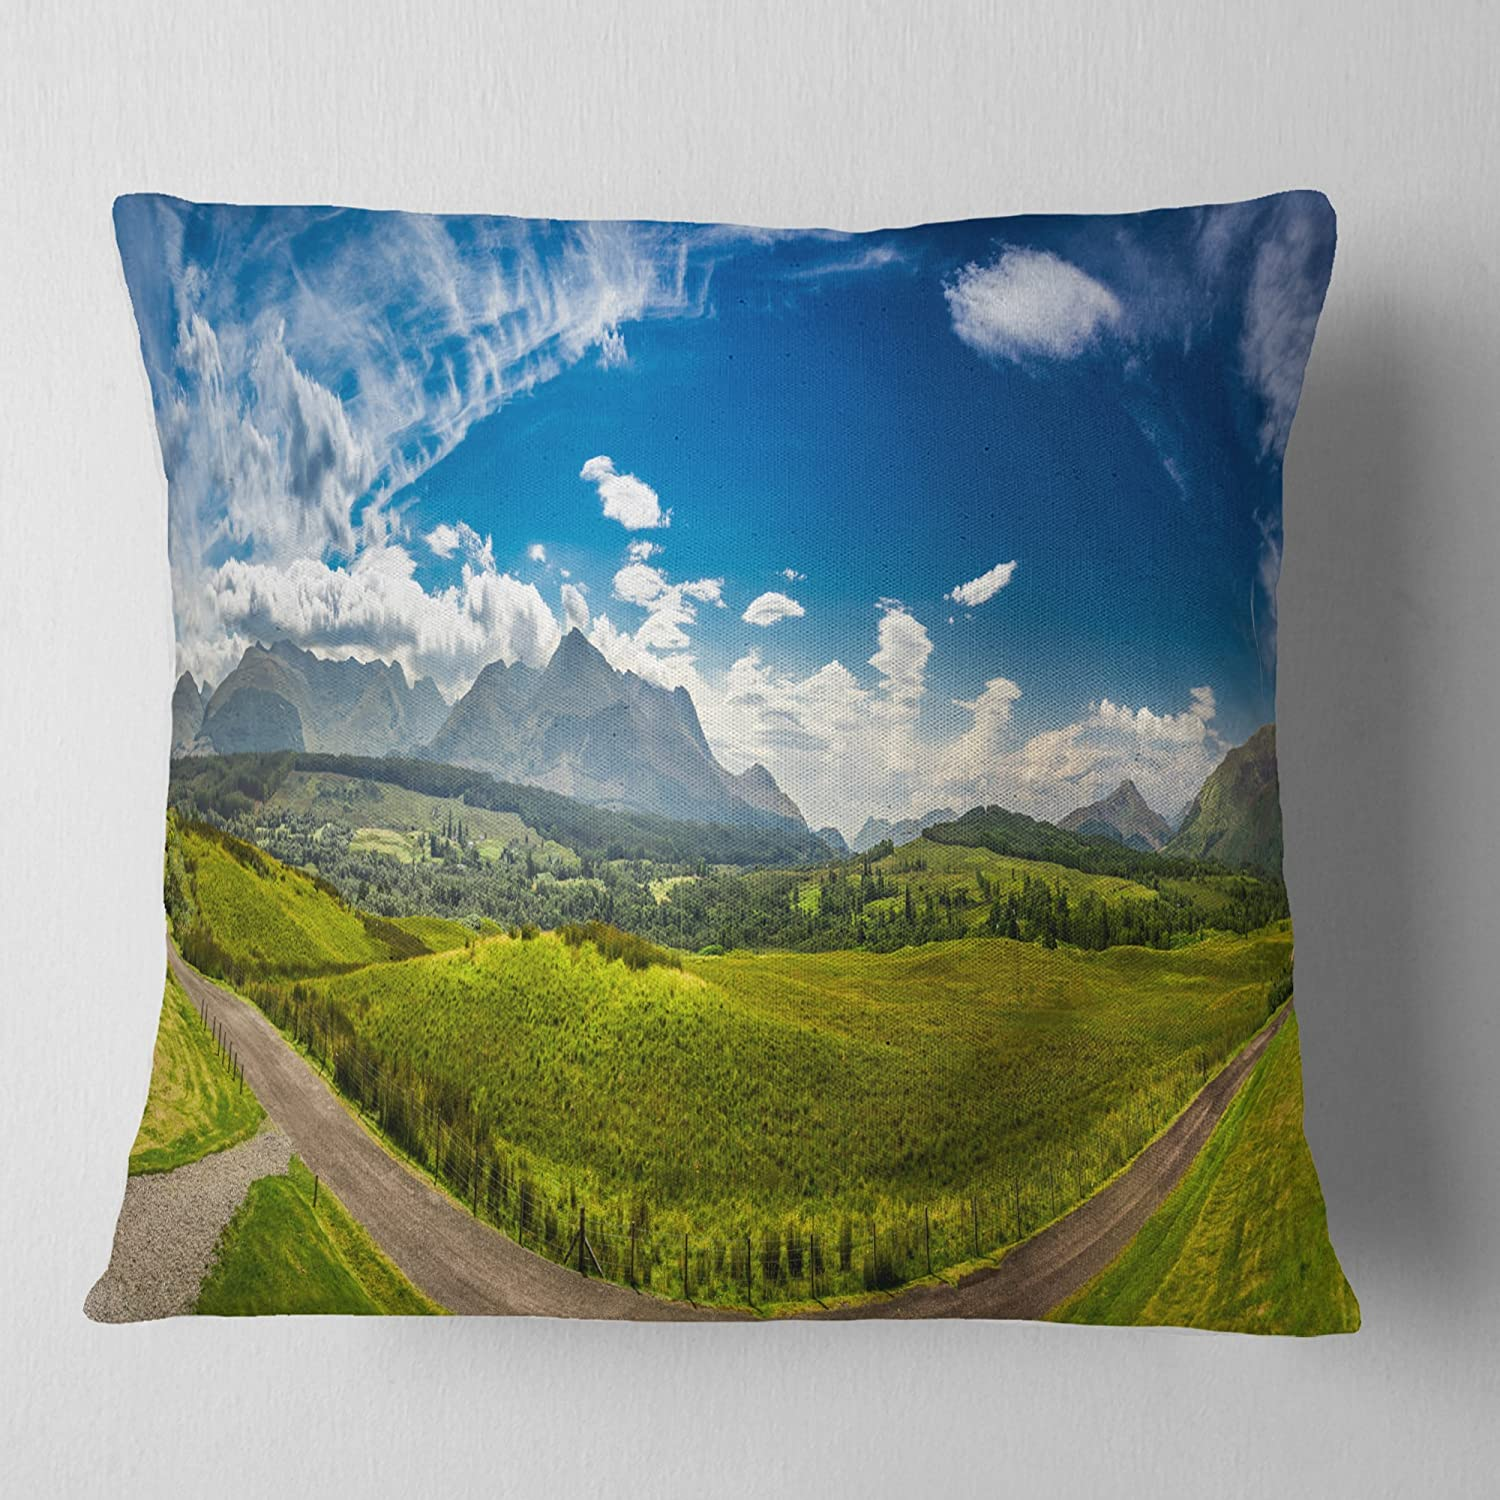 Designart CU11068-16-16 Scottish Highlands Panoramic View' Landscape Printed Cushion Cover for Living Room, Sofa, Throw Pillow, 16' x 16',